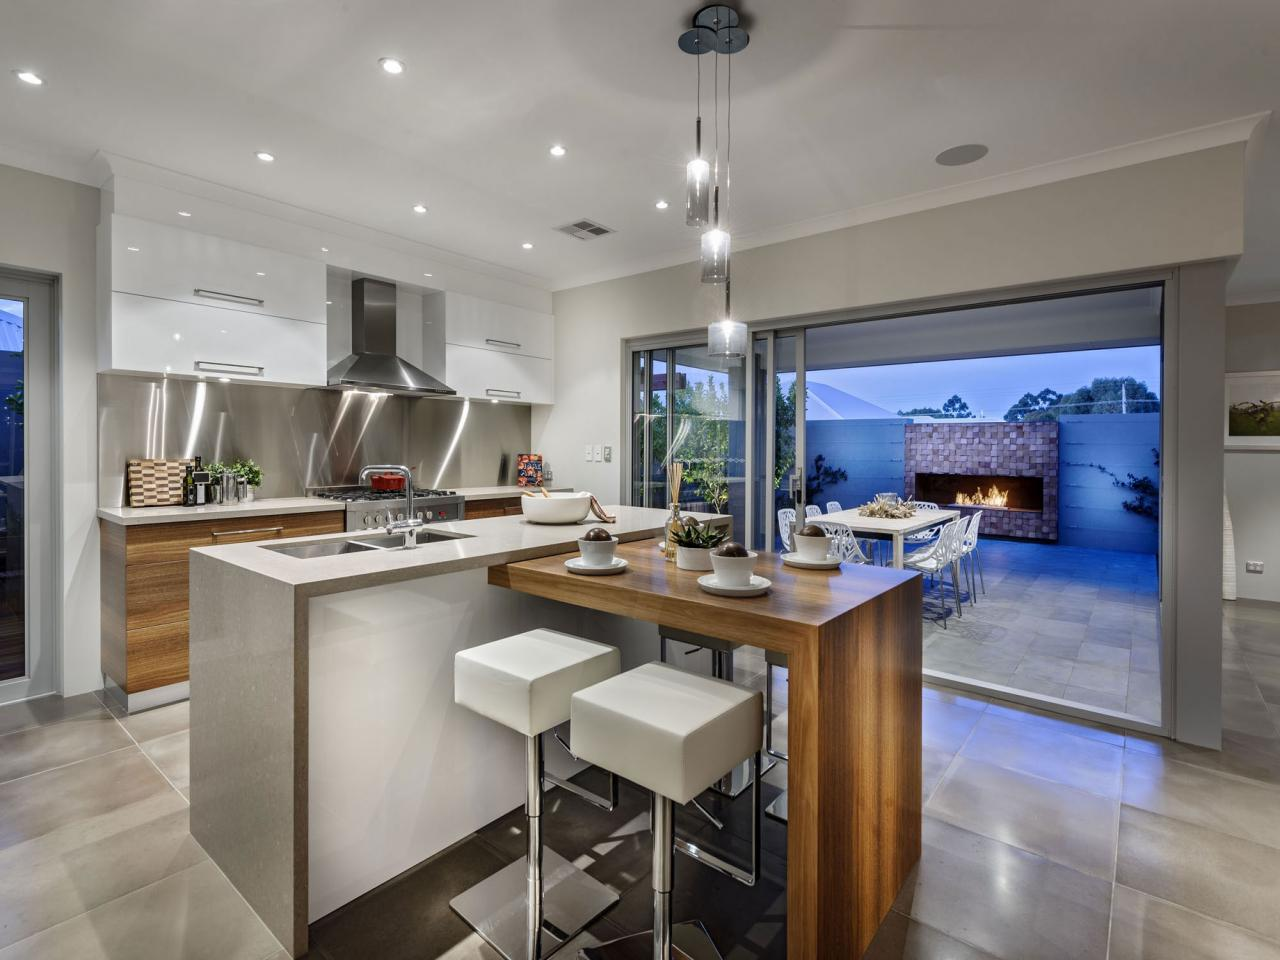 Image of: Kitchen Design With Island And Pantry